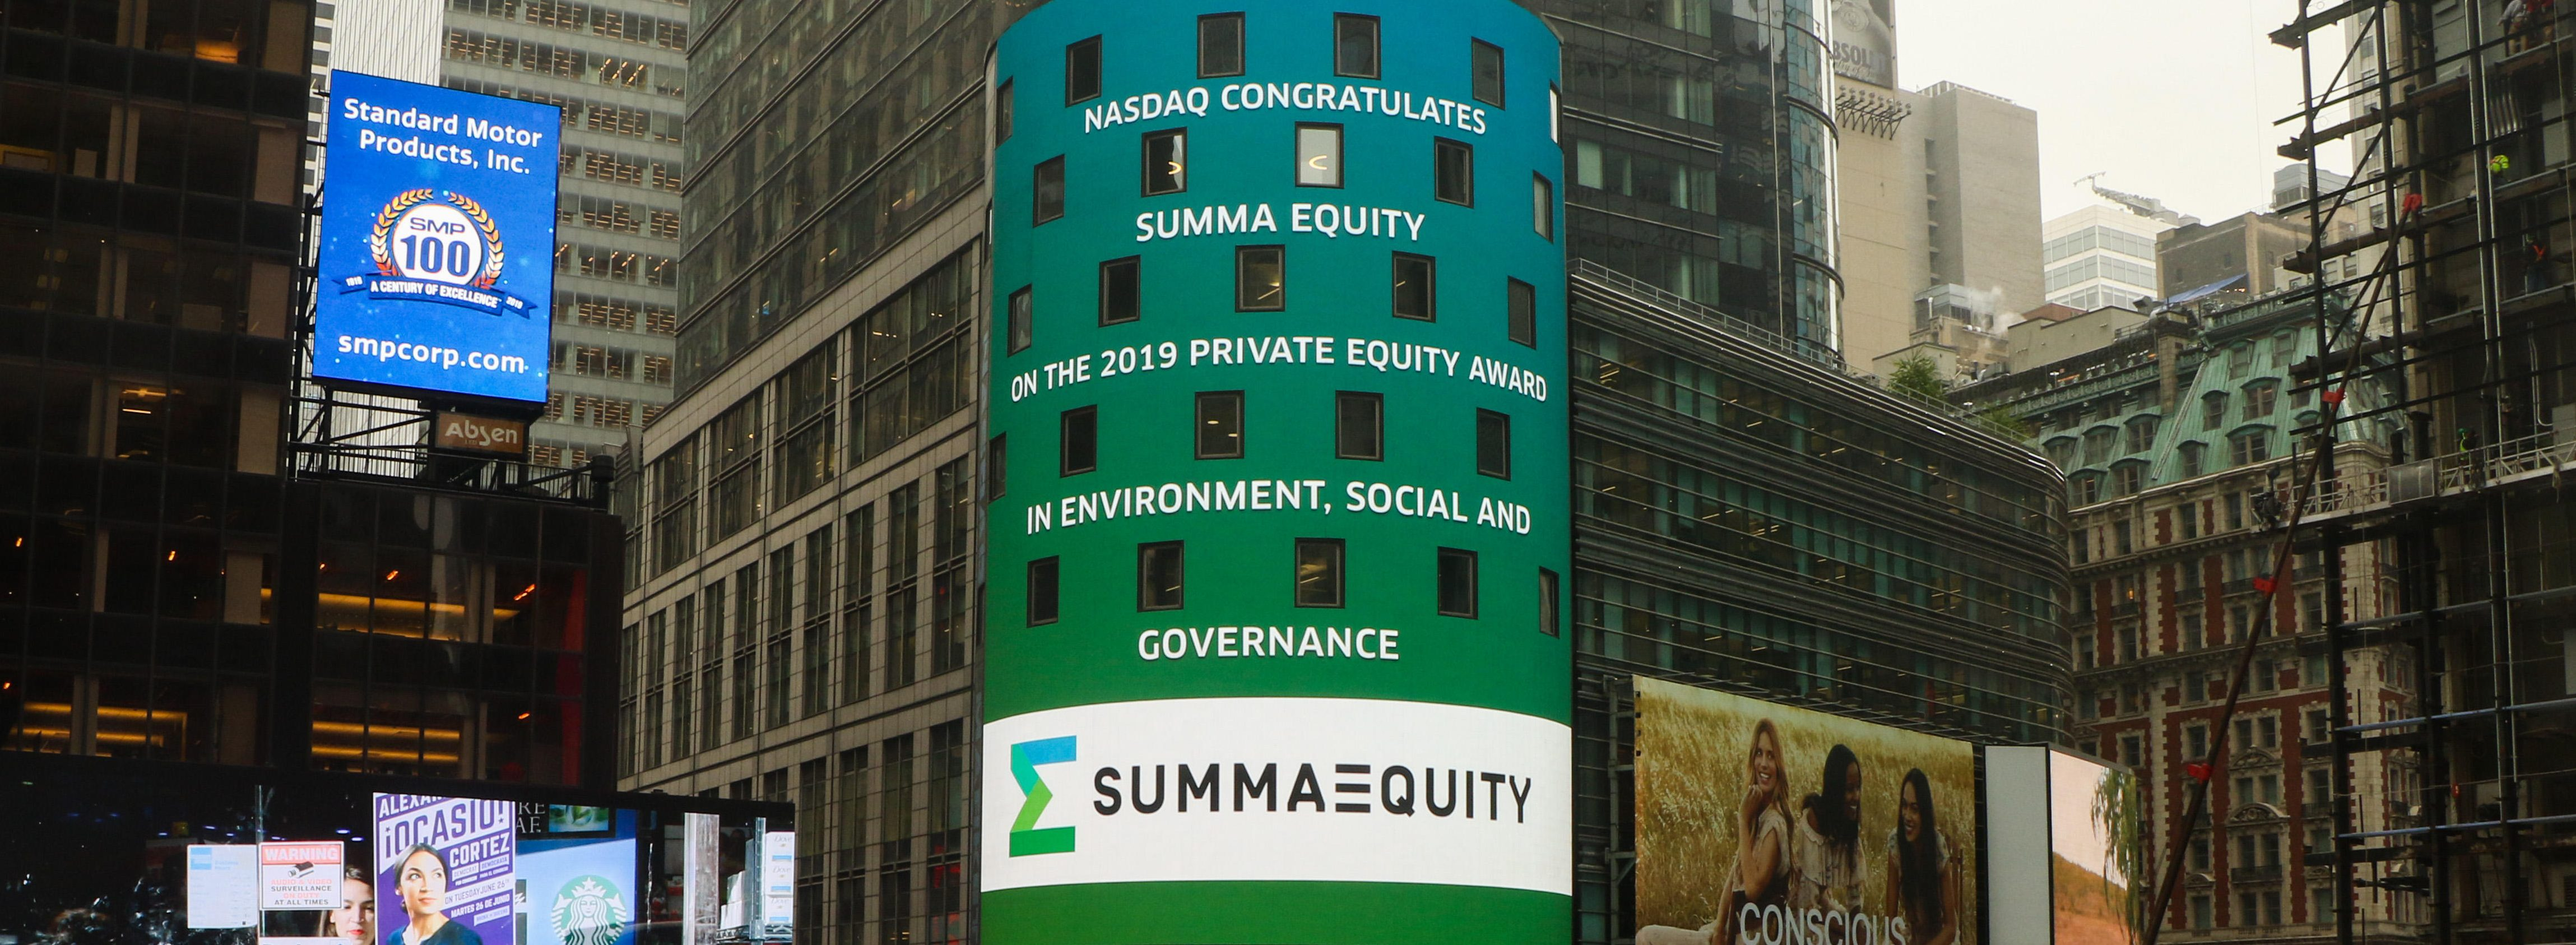 News - Summa Equity